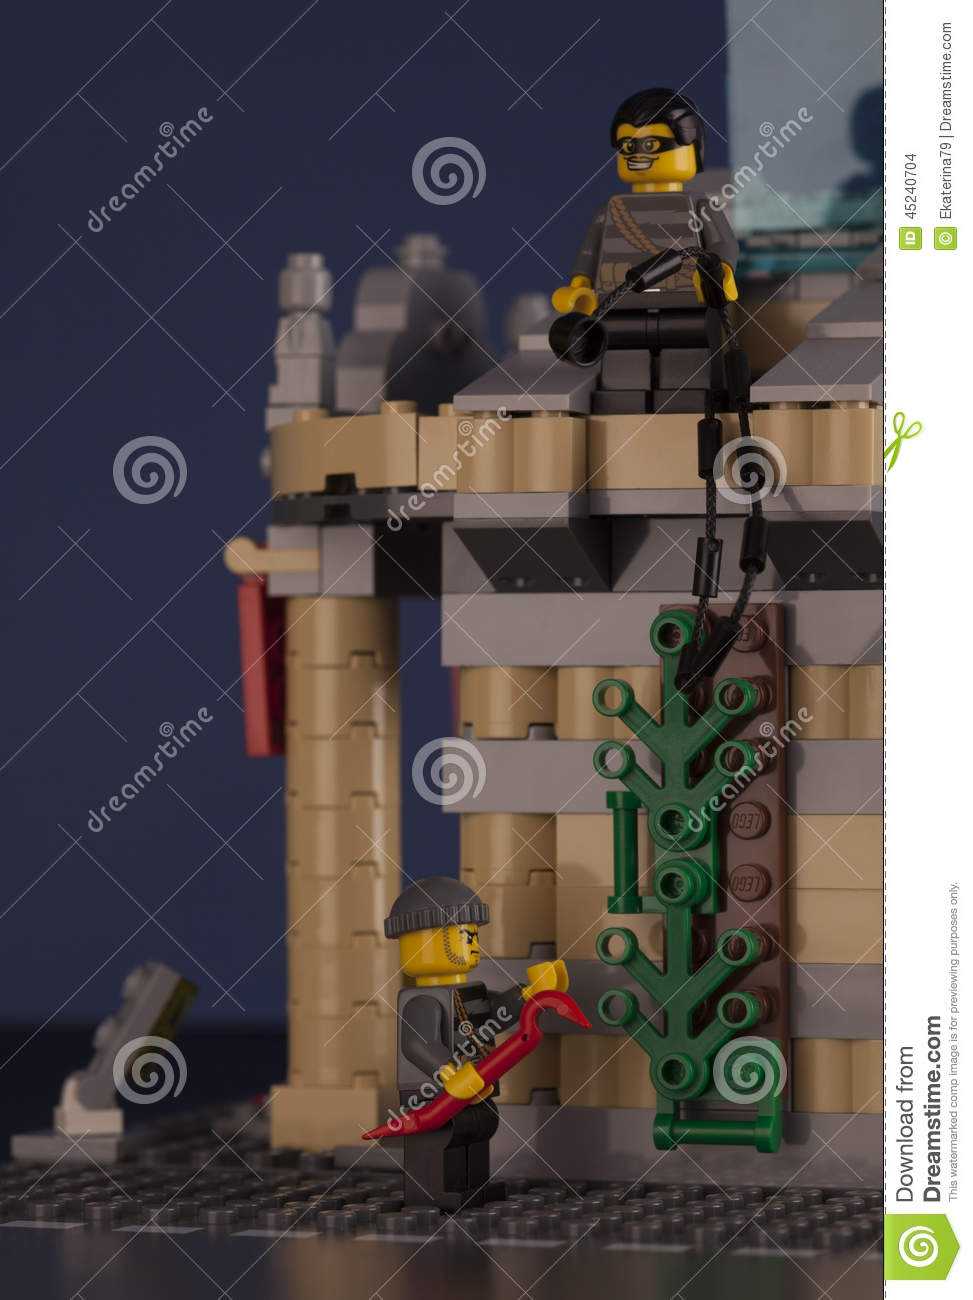 LEGO night museum break in editorial stock image  Image of burglary     Download comp